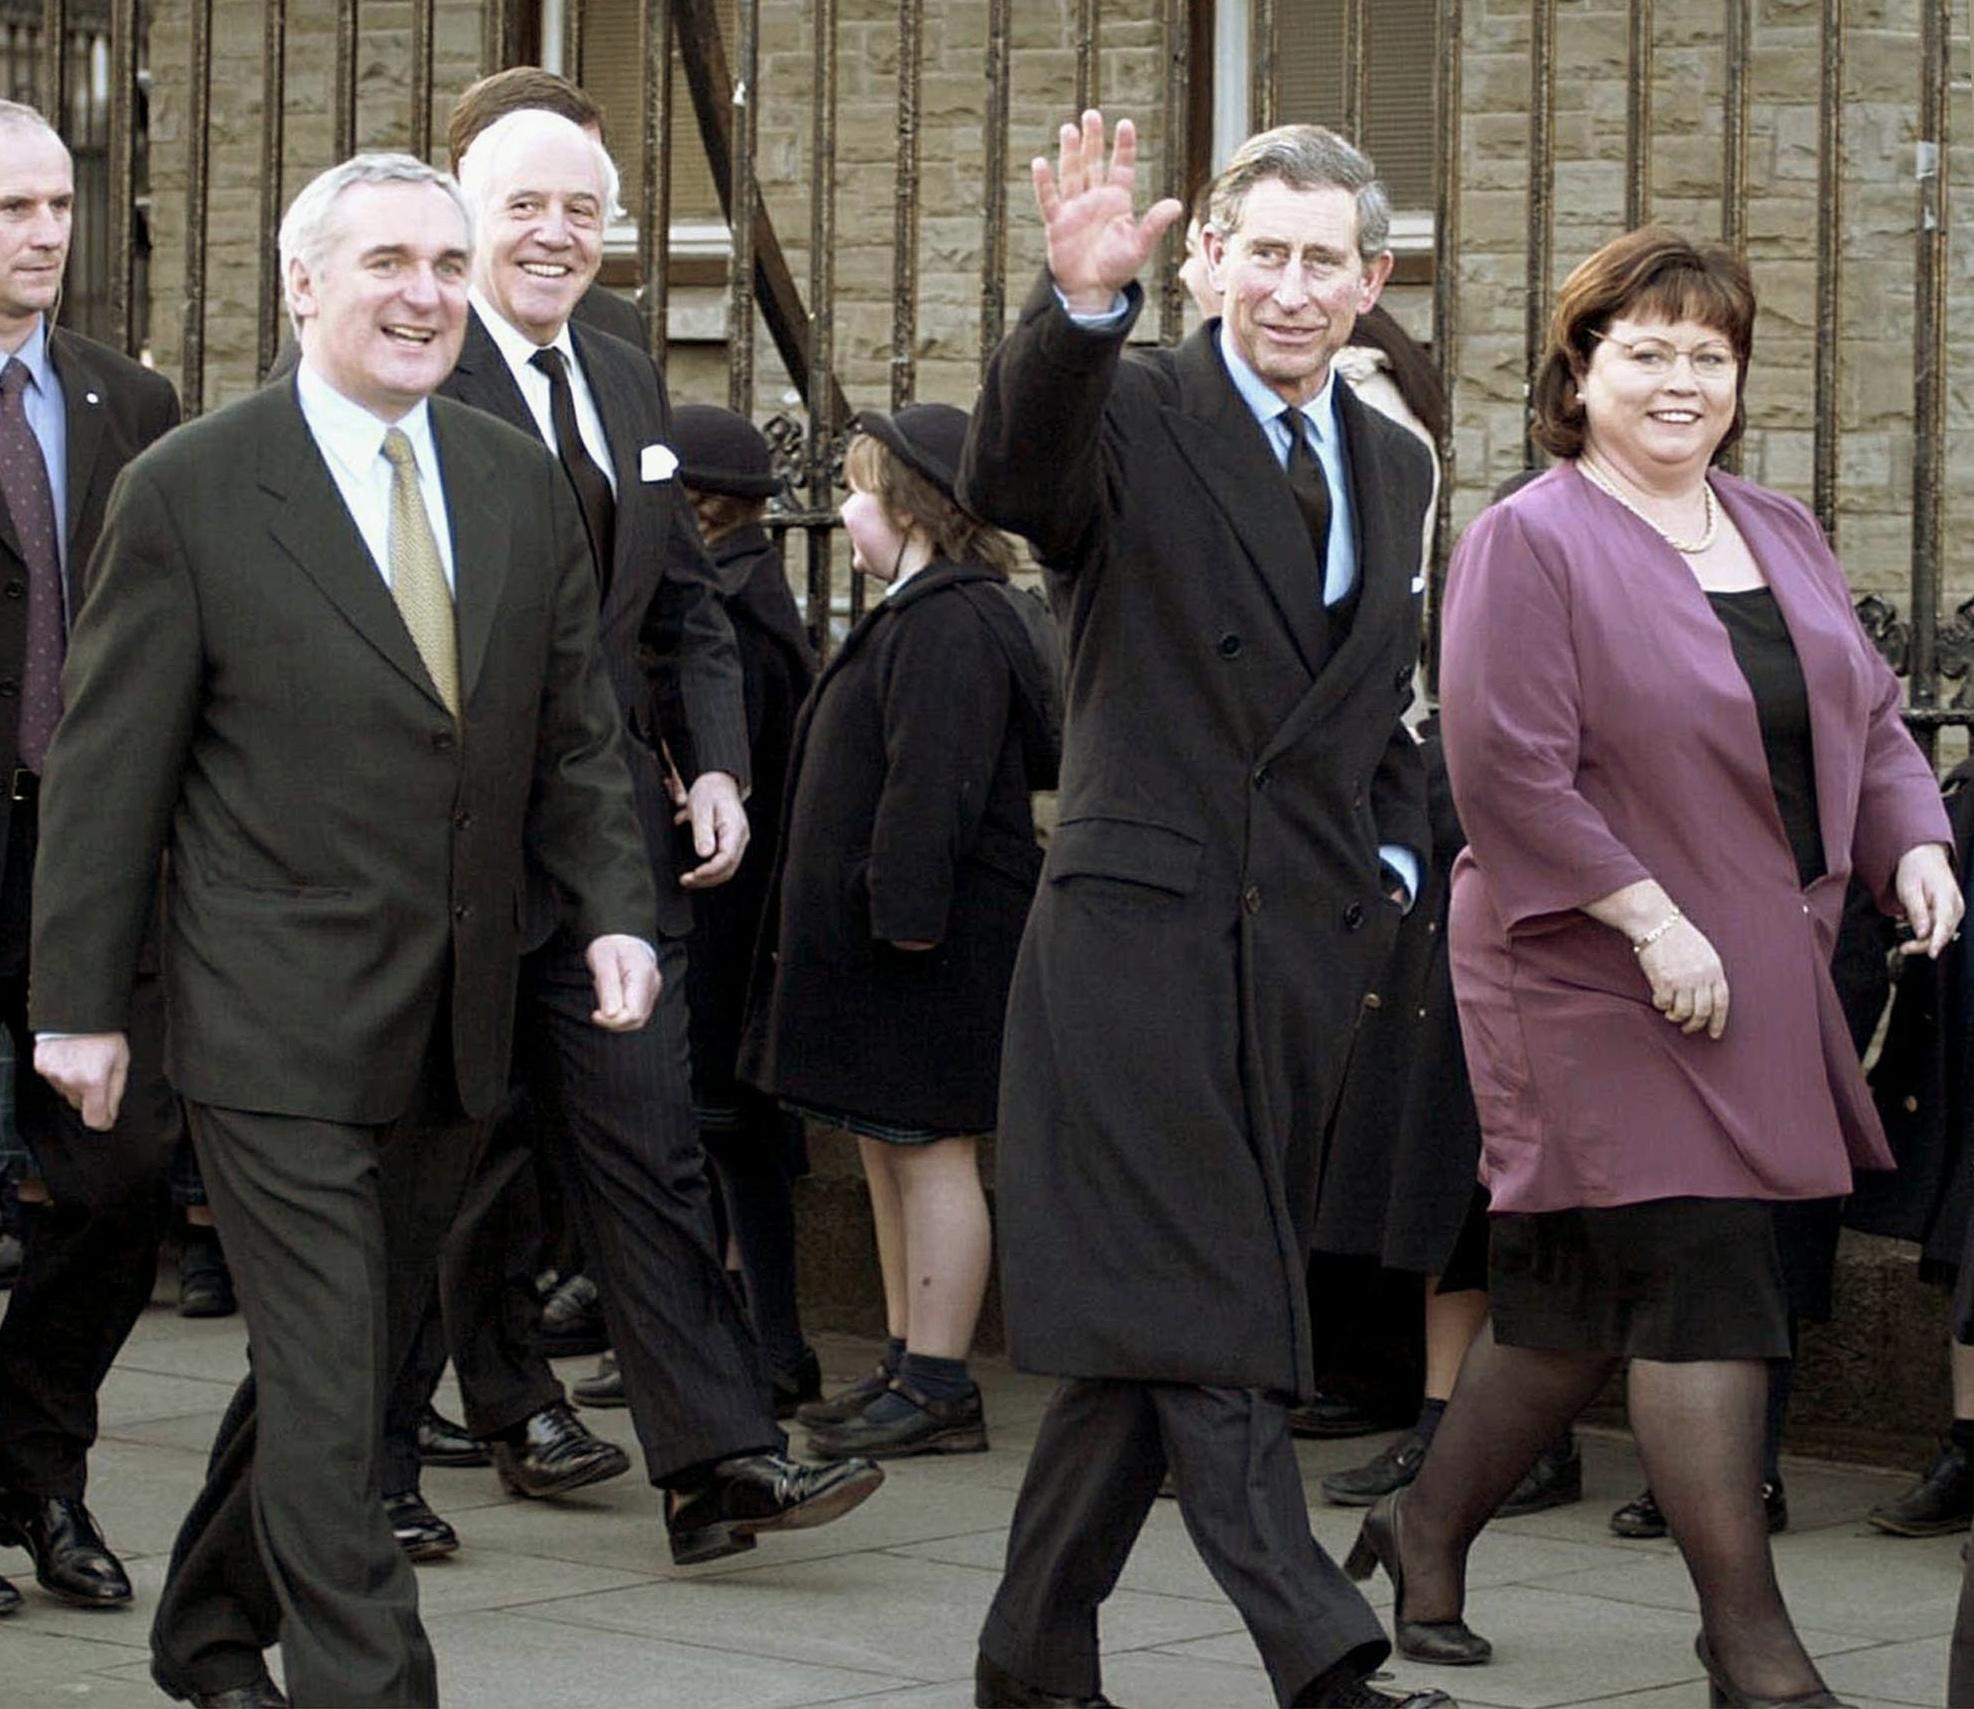 Charles expected to visit scene of great-uncle's IRA killing